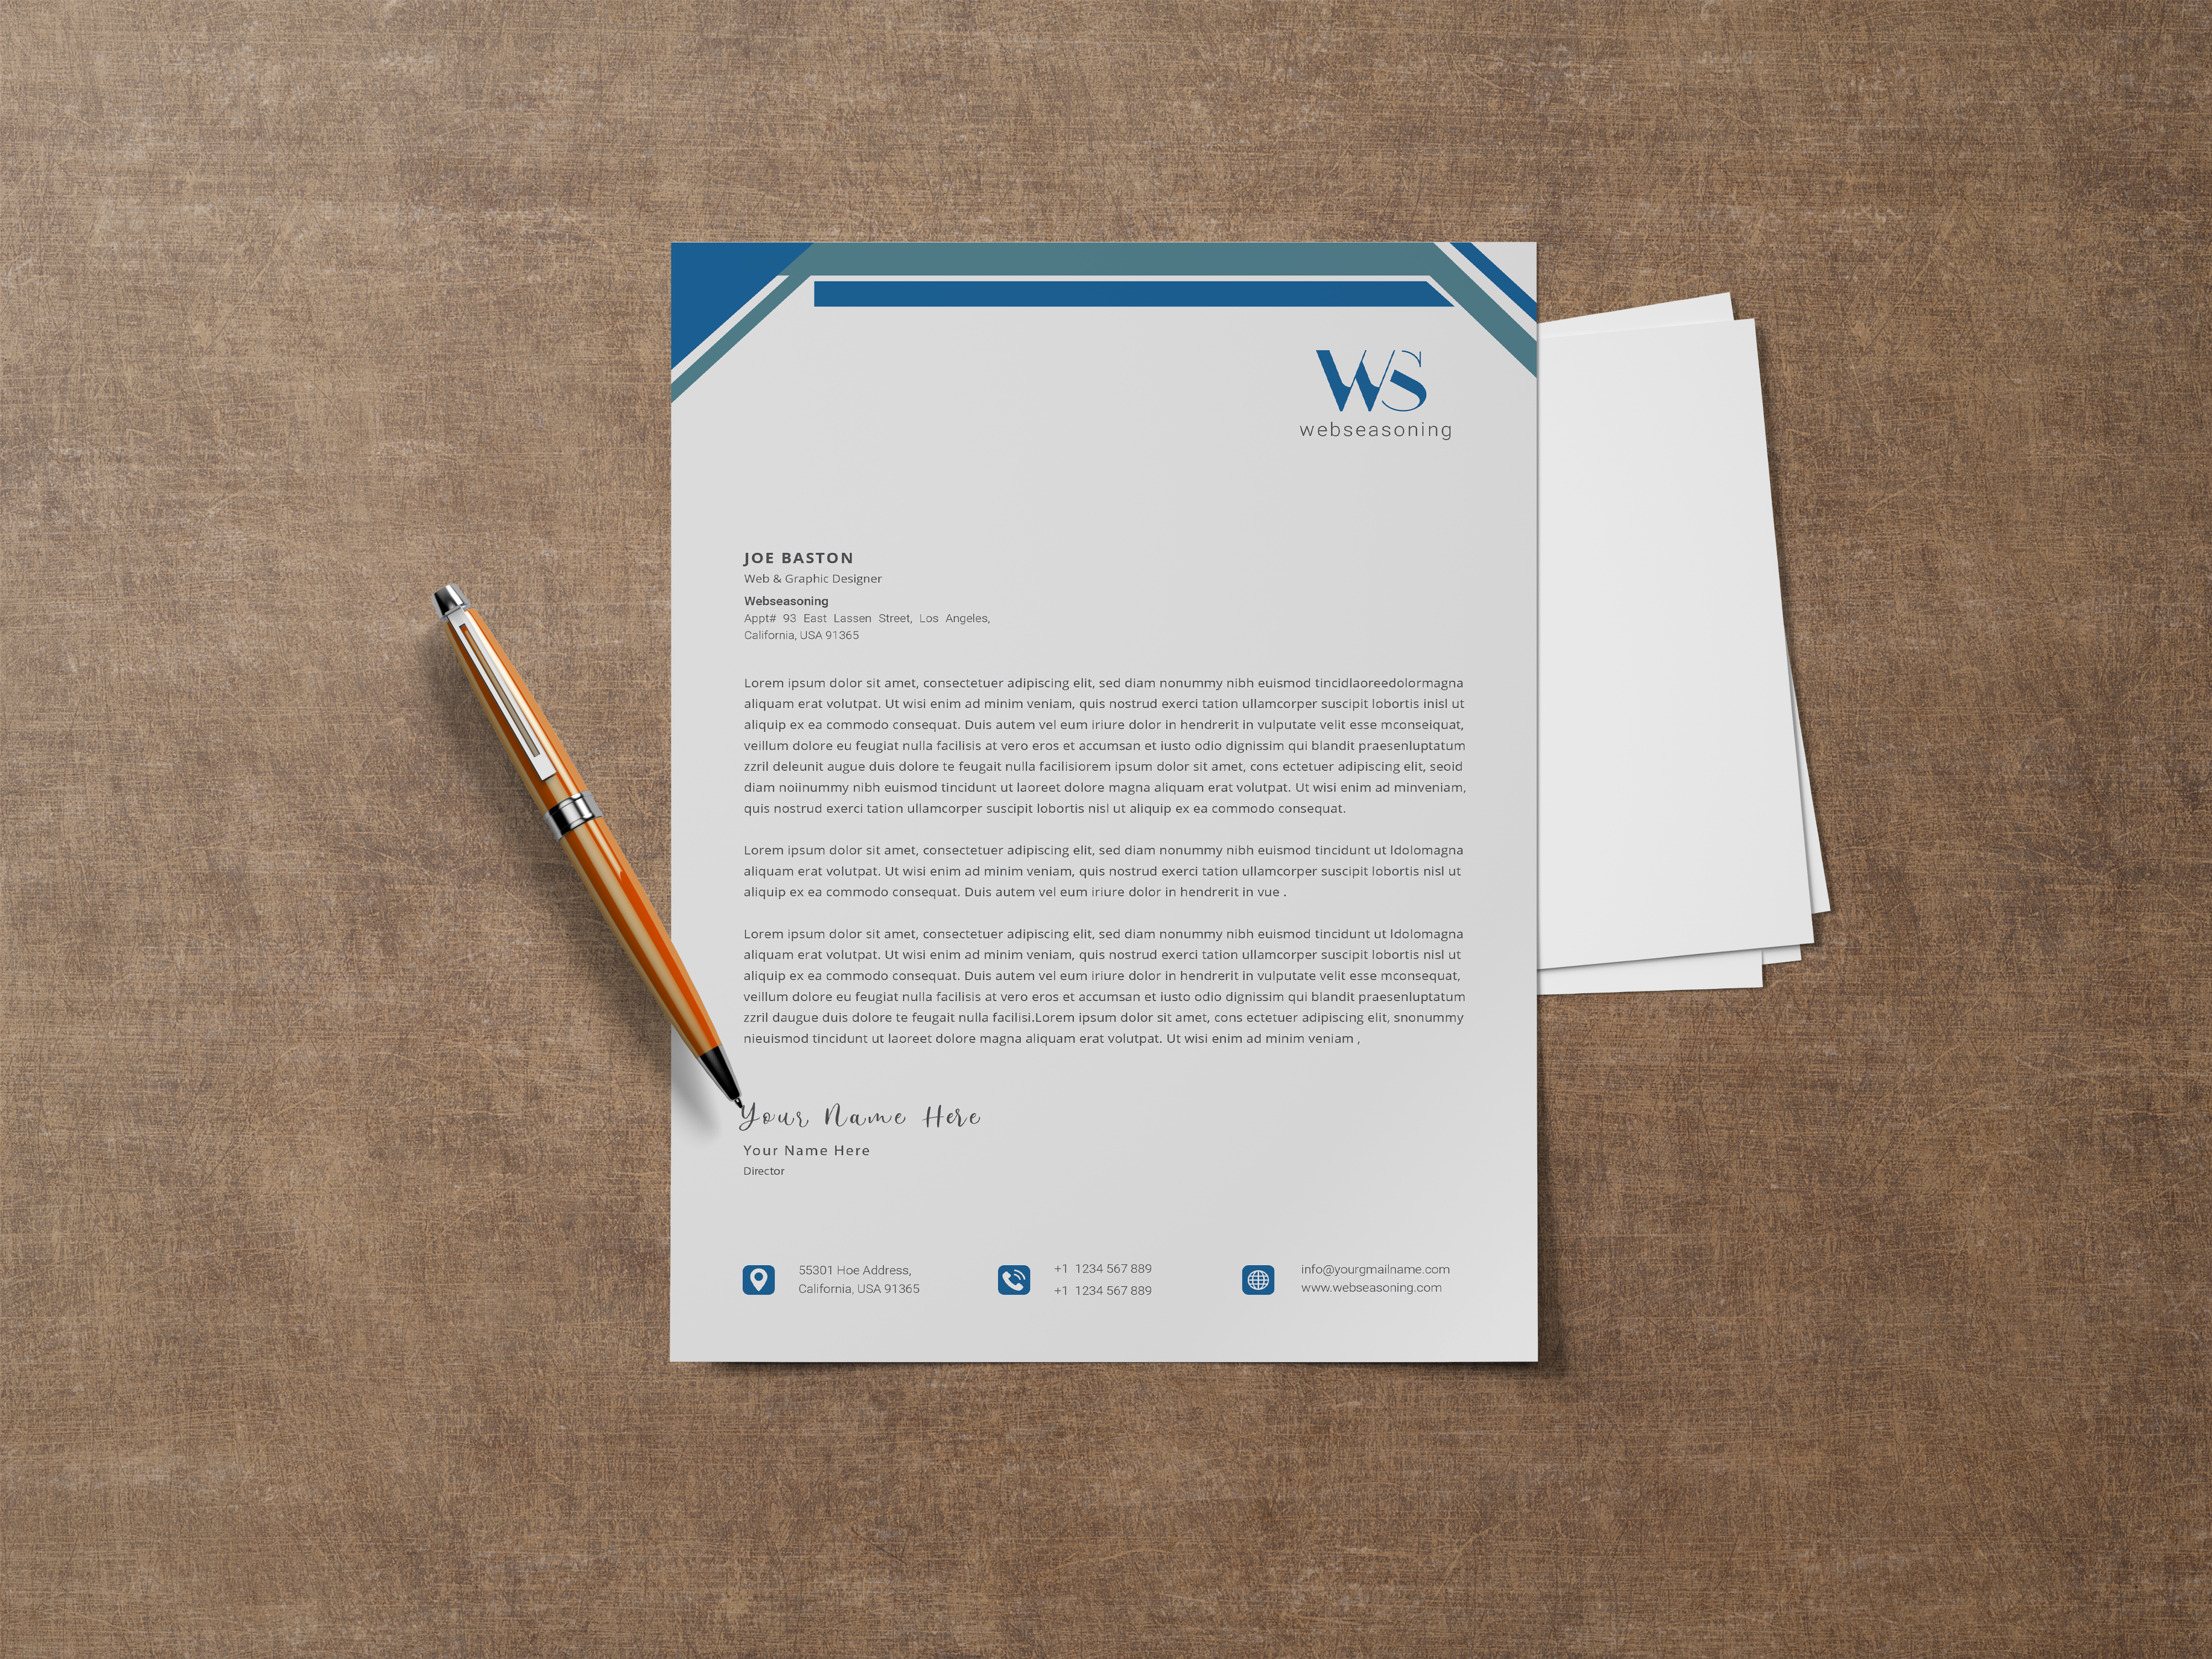 Professional creative letterhead template design for your business Free Vector